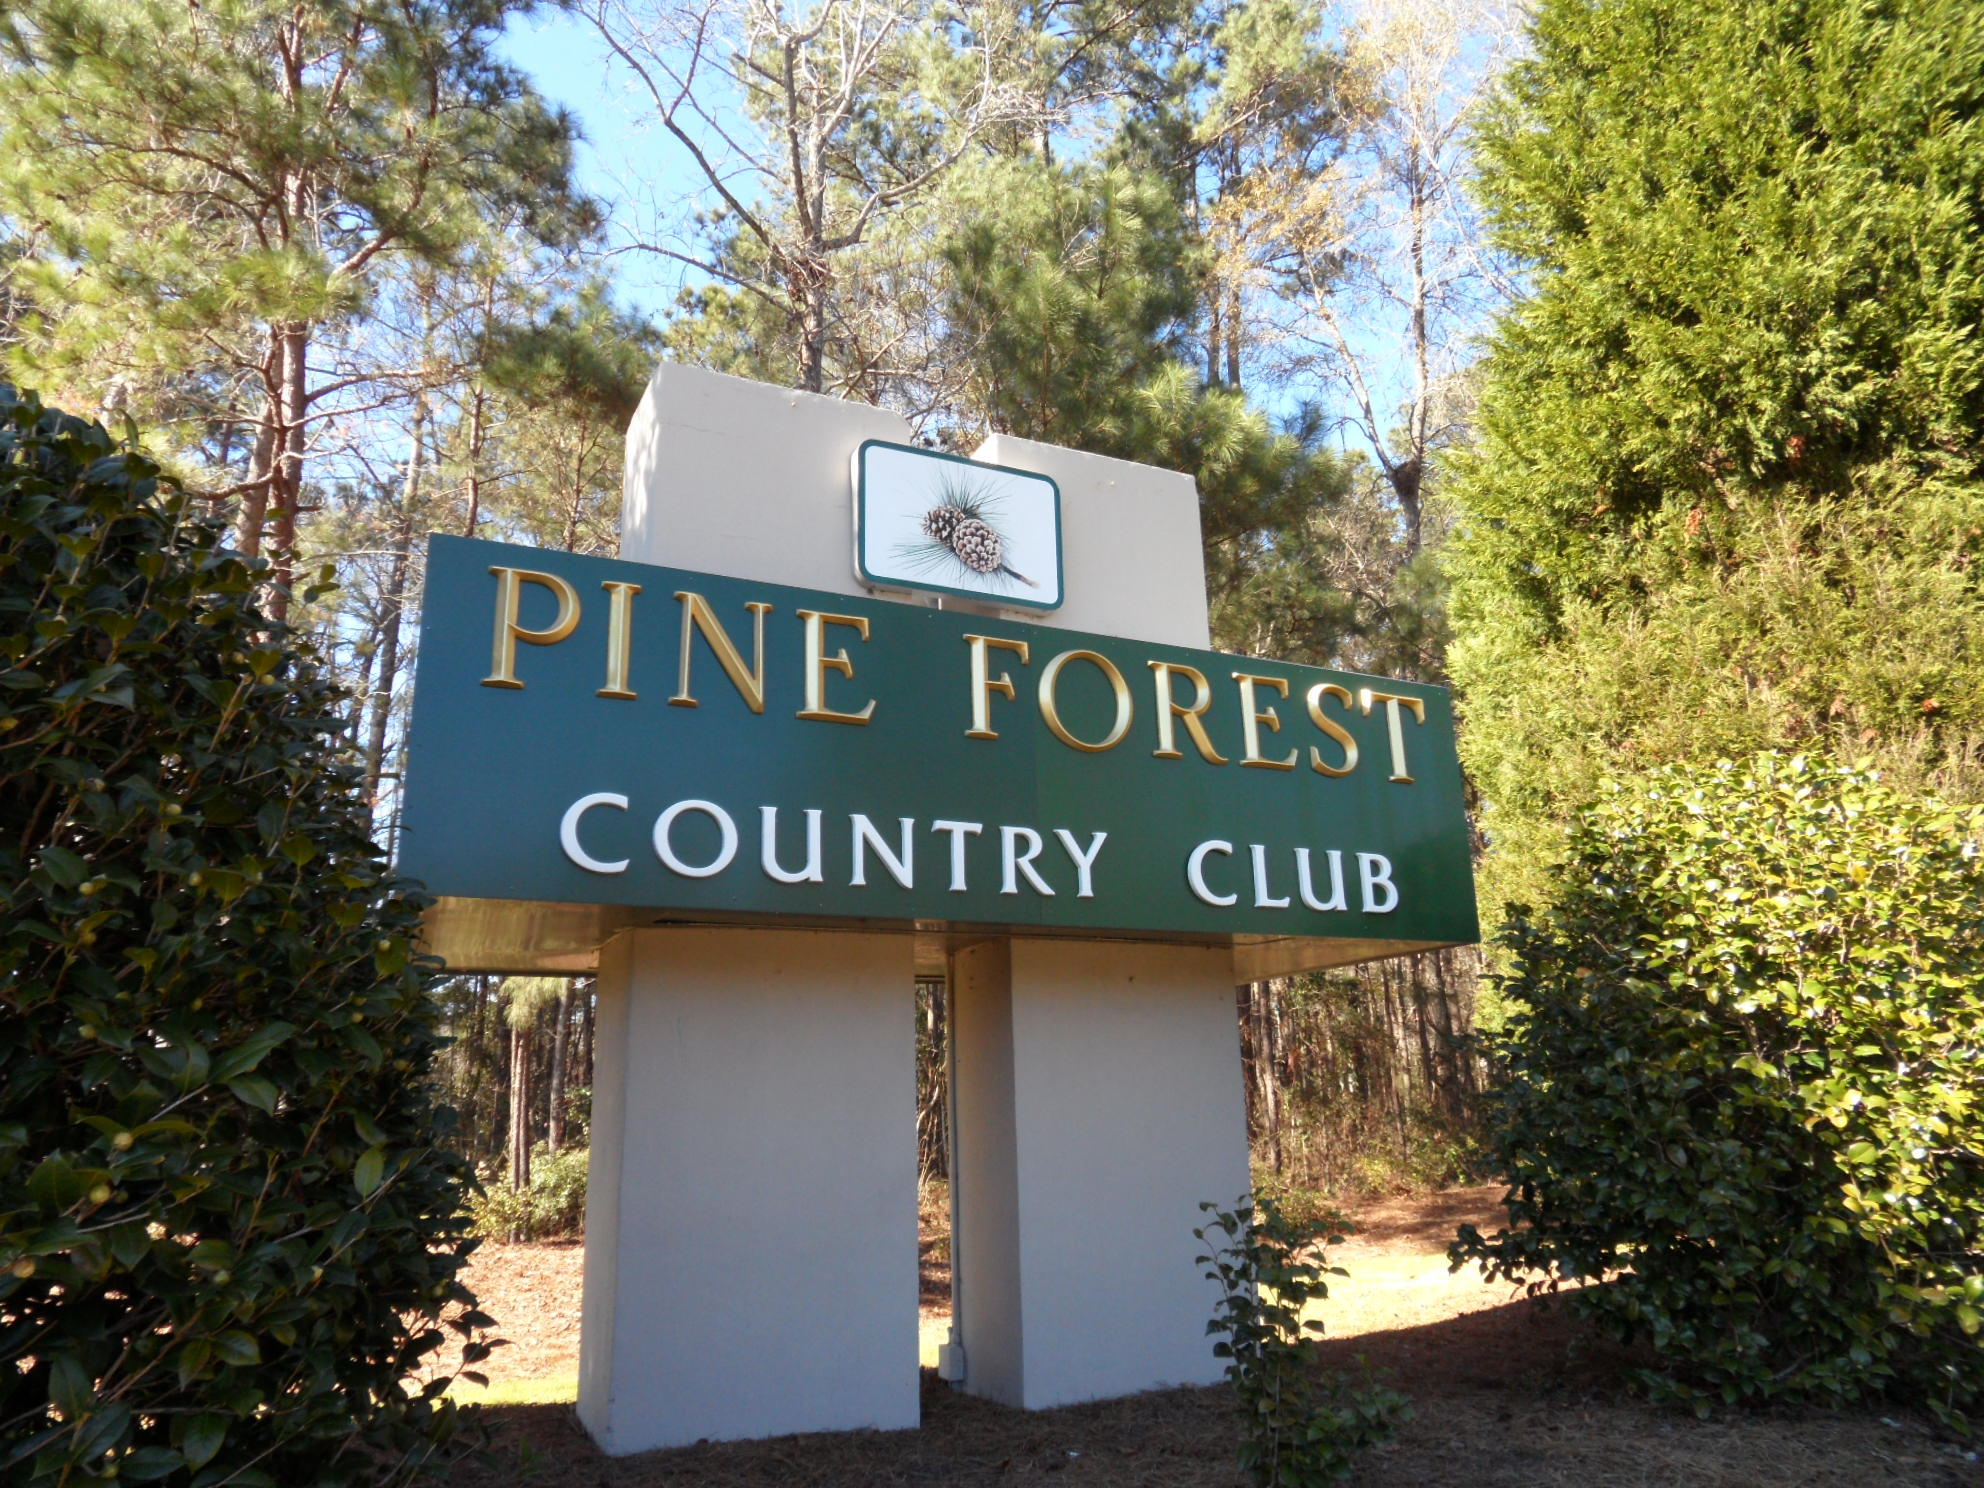 Pine Forest Country Club Homes For Sale - 617 Kilarney, Summerville, SC - 14